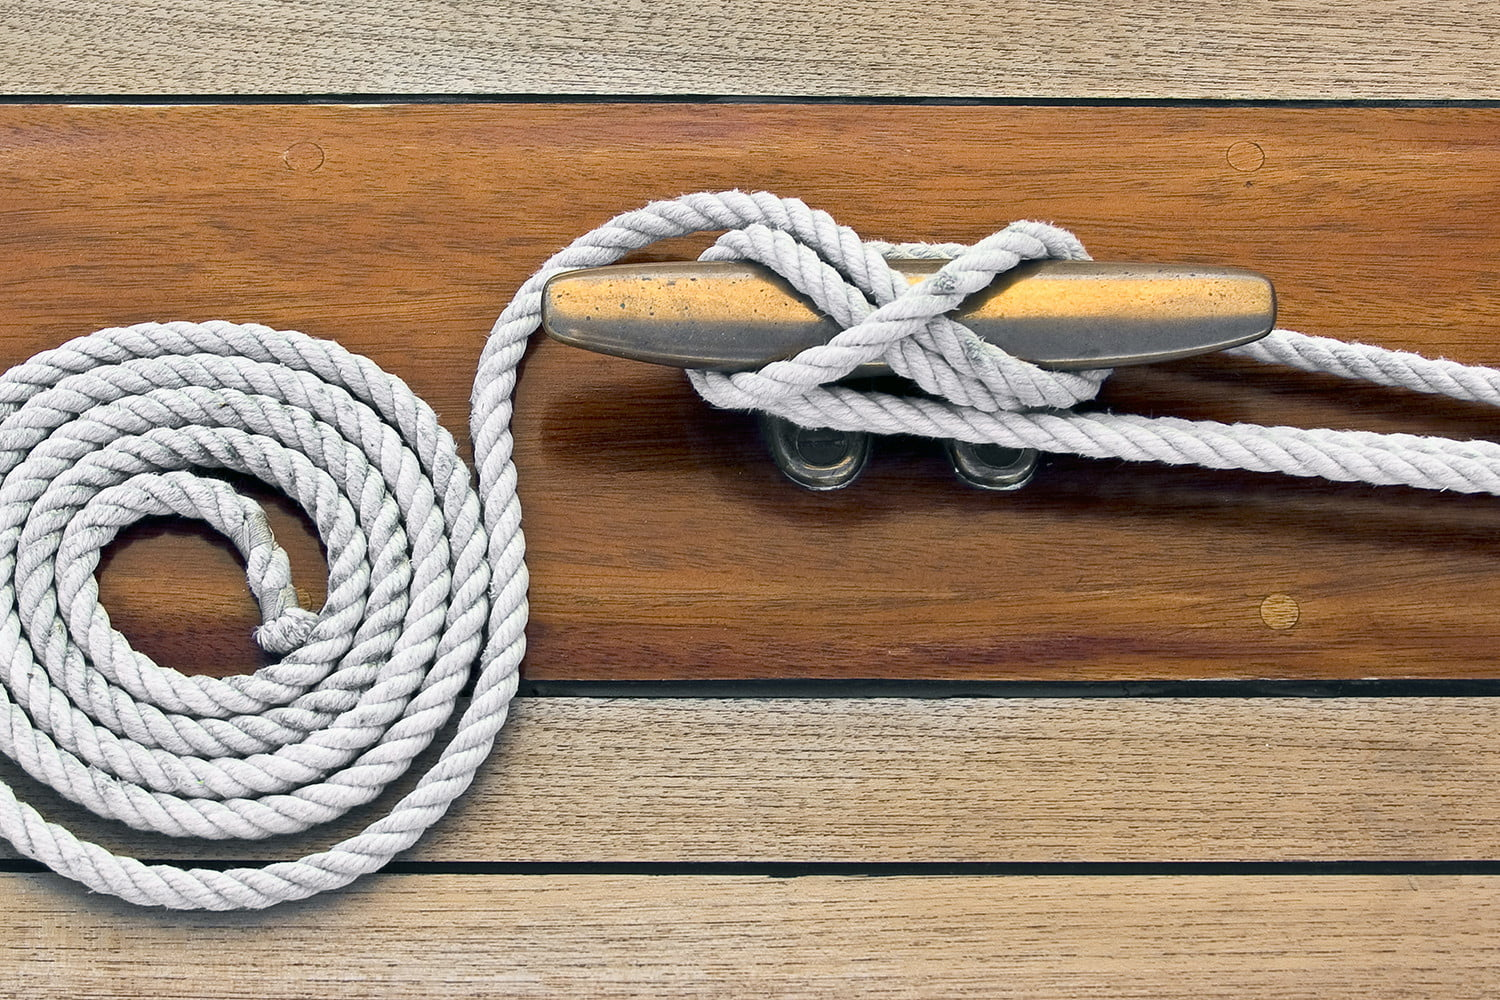 8 Sailing Knots You Need to Know